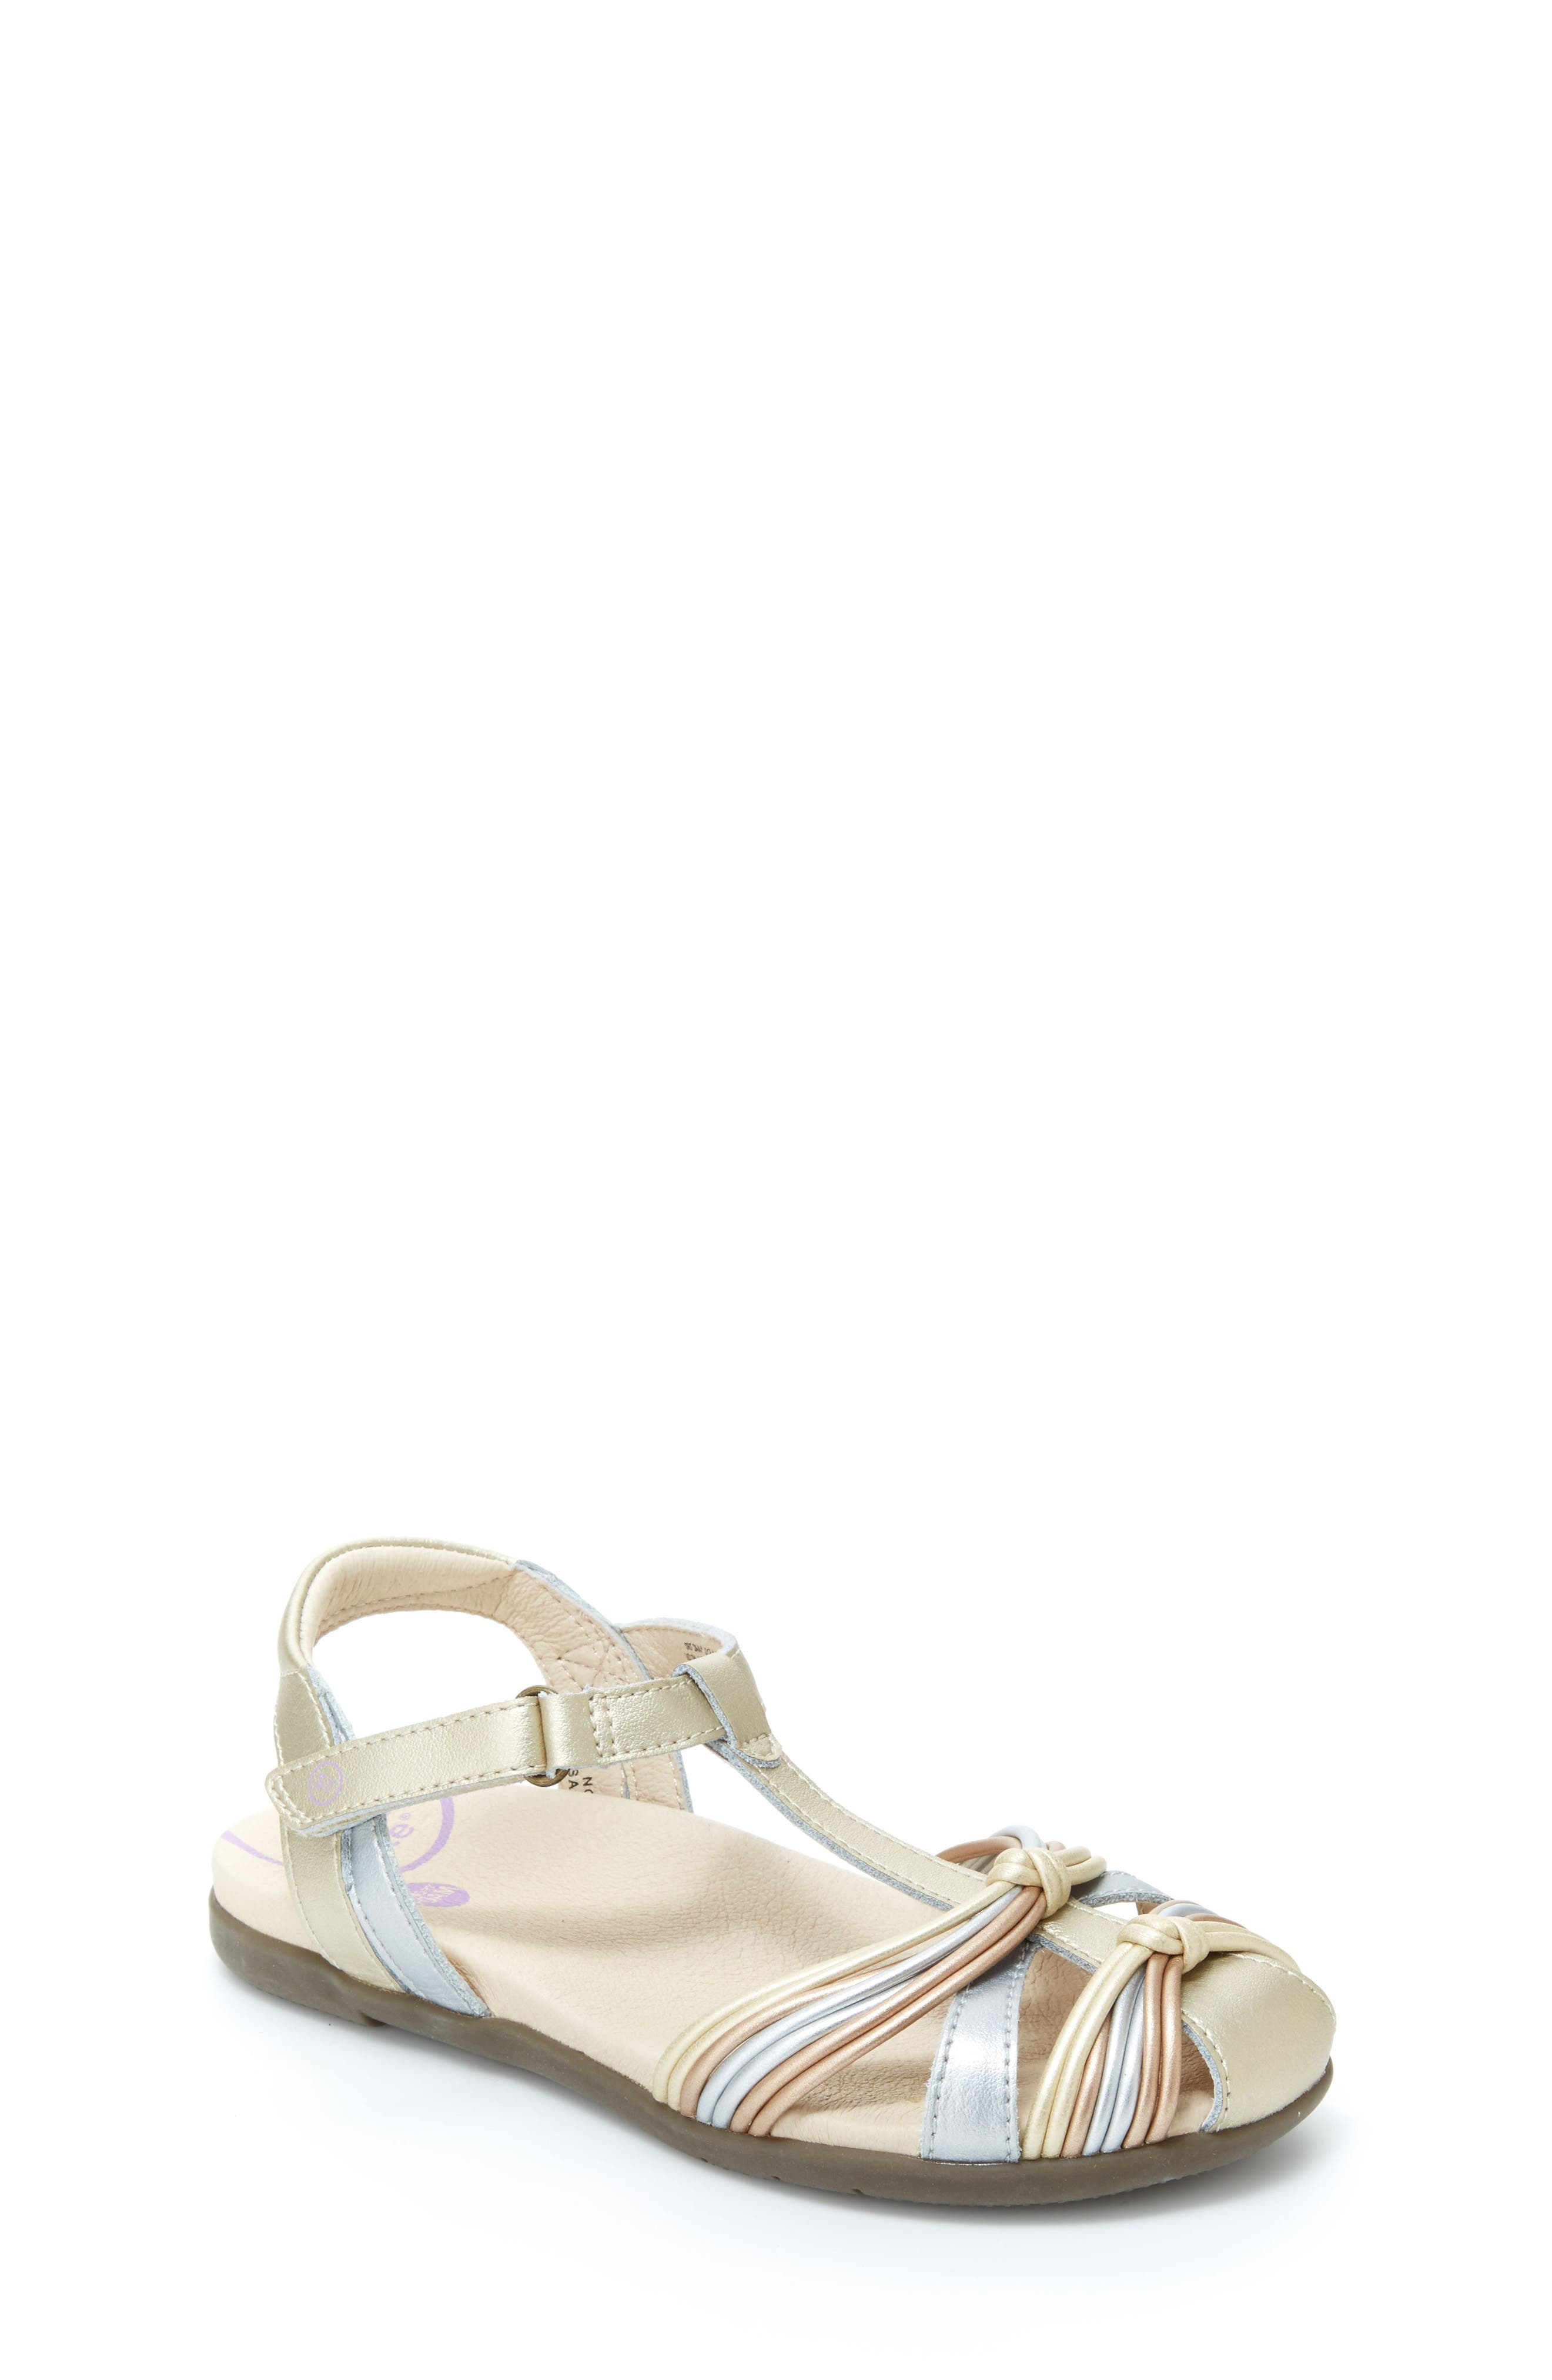 Dana T-Strap Sandal,                             Main thumbnail 1, color,                             Metallic Multi